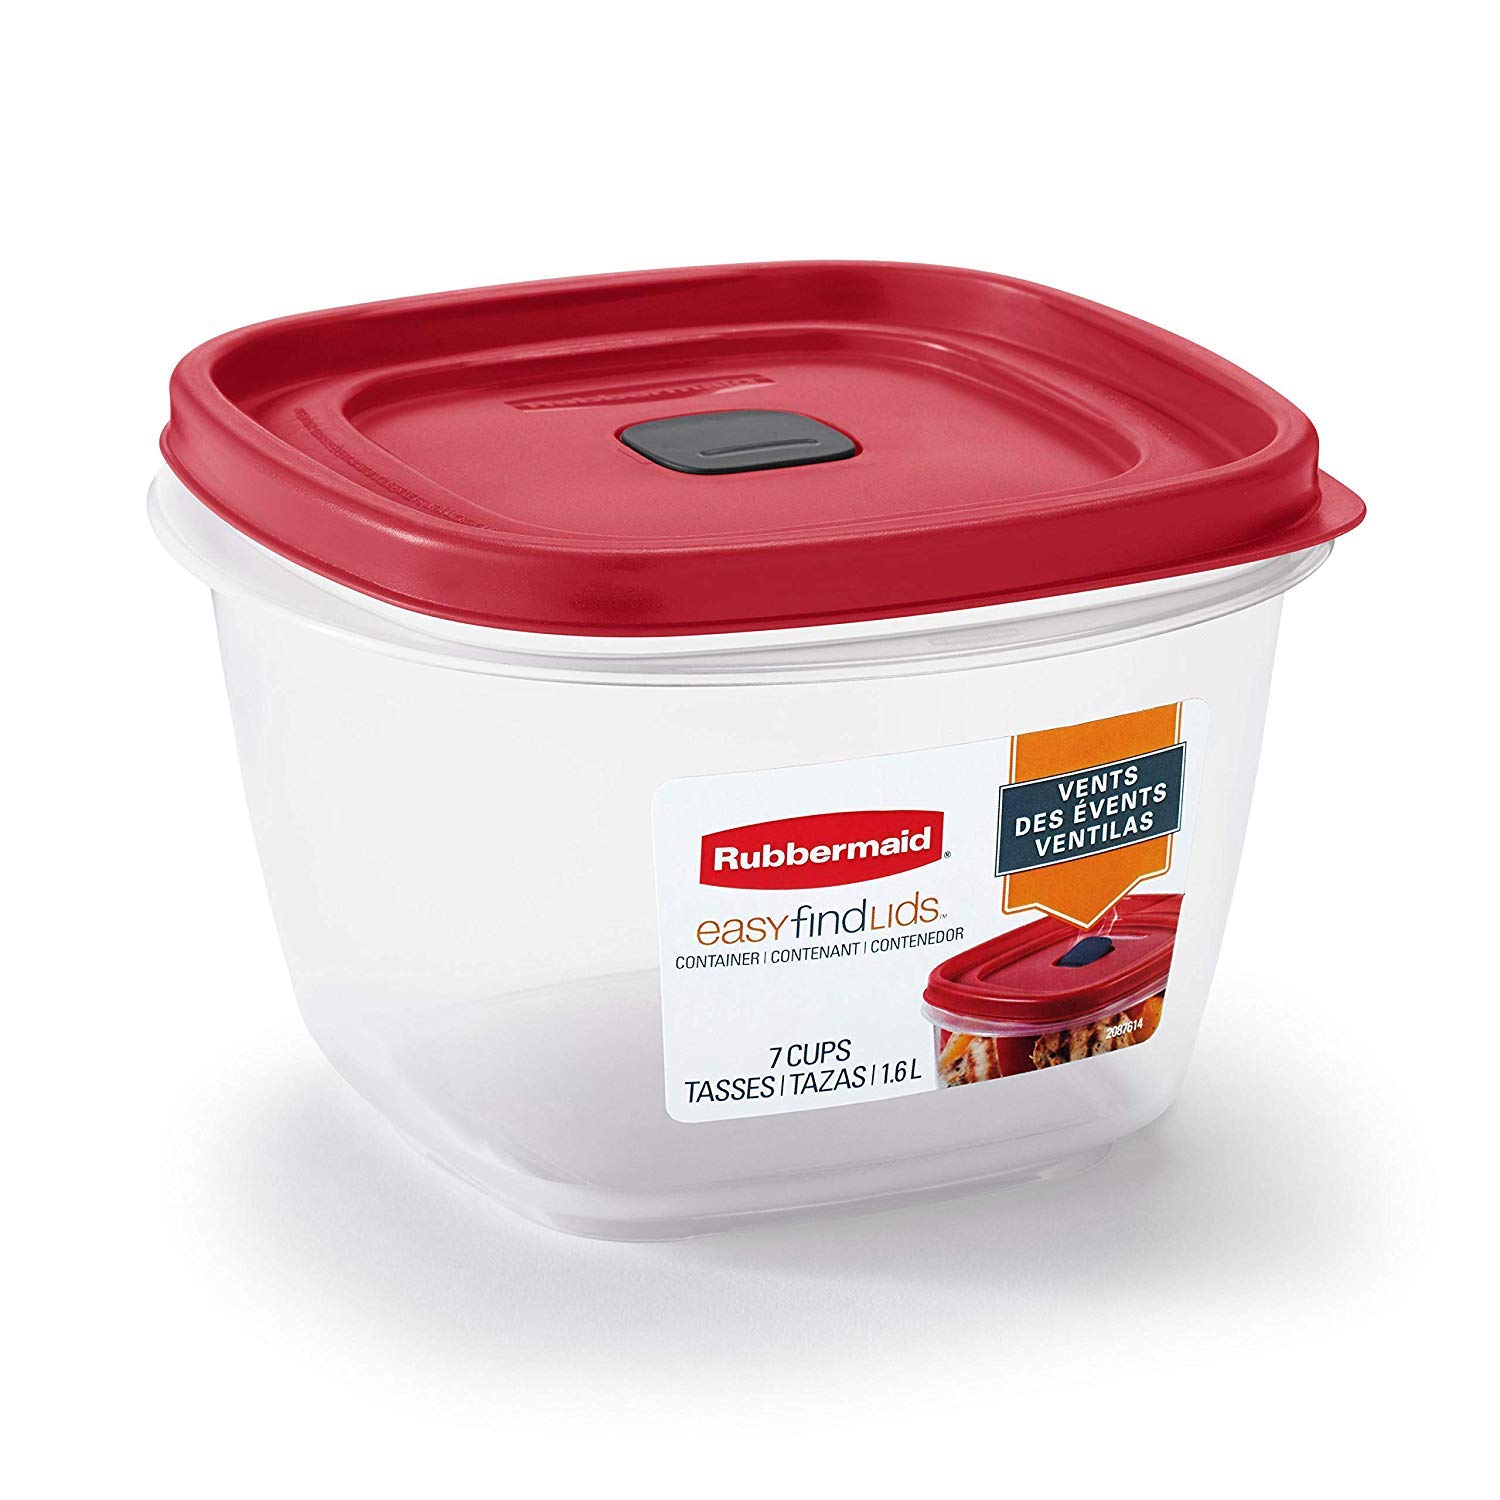 Rubbermaid 2030330 Easy Find Vented Lid Food Storage Containers, 7-Cup (3)